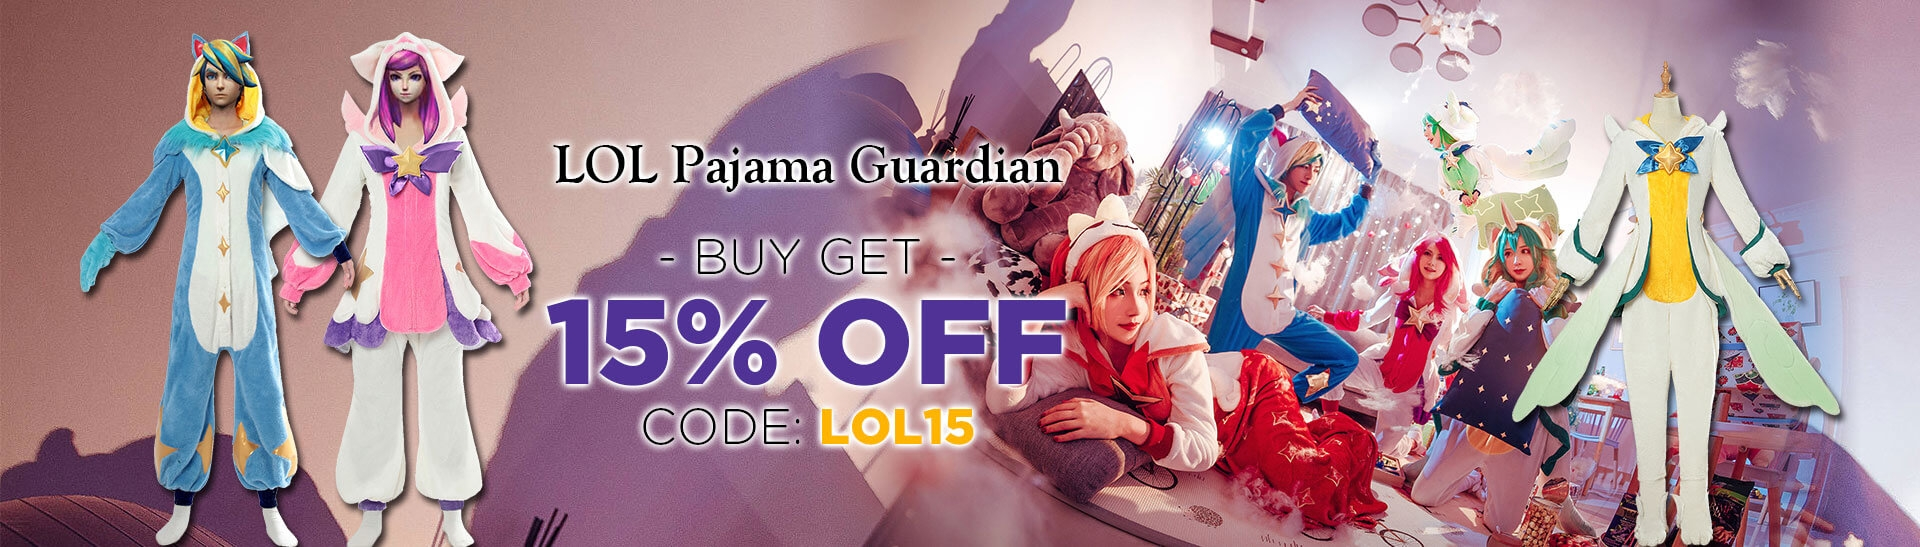 LOL Pajama Guardian Cosplay